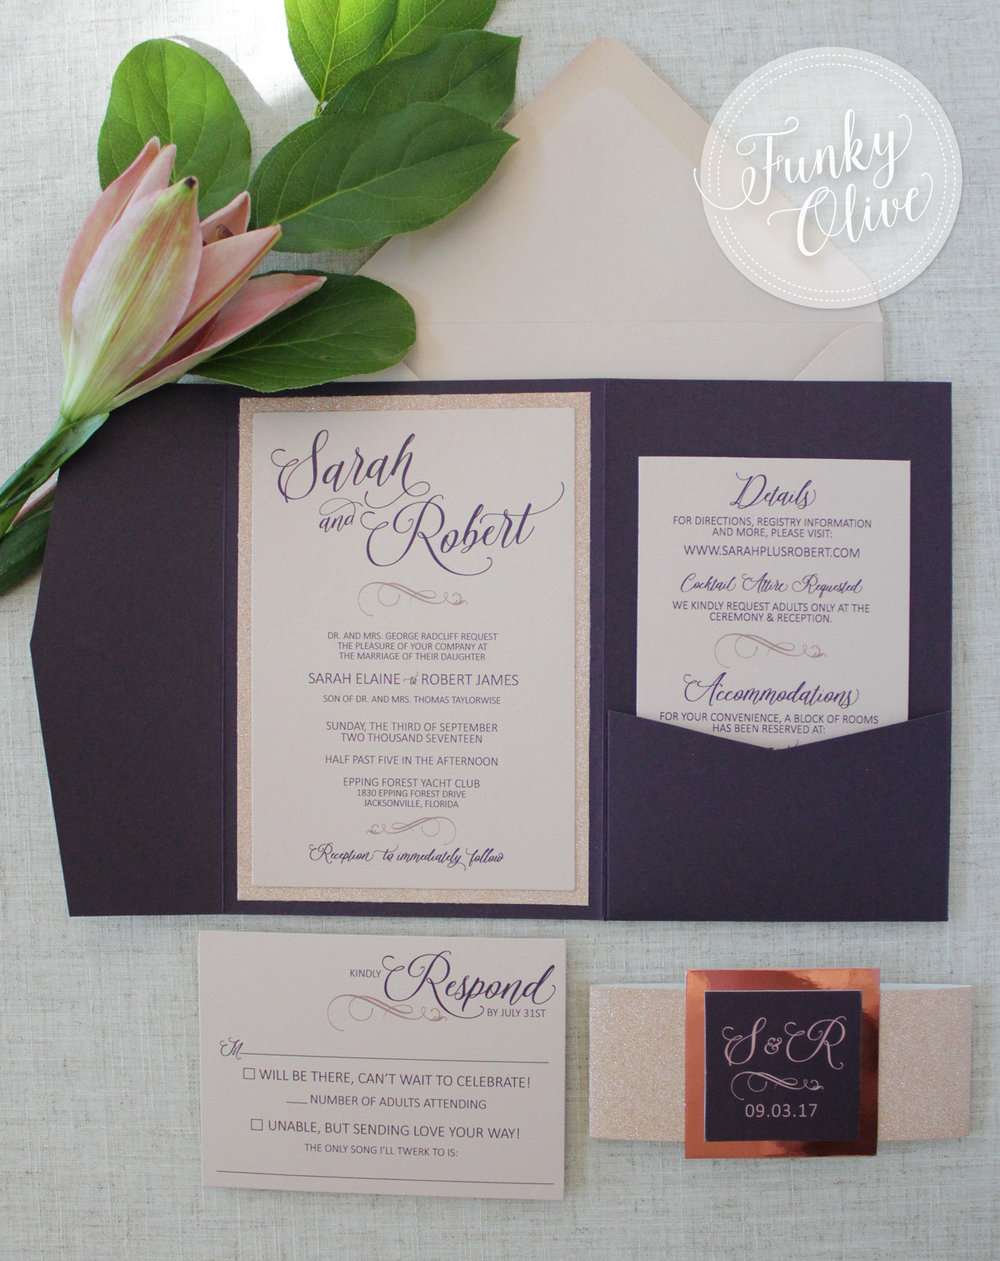 EGGPLANT & ROSE GOLD INVITATION SUITE.jpg